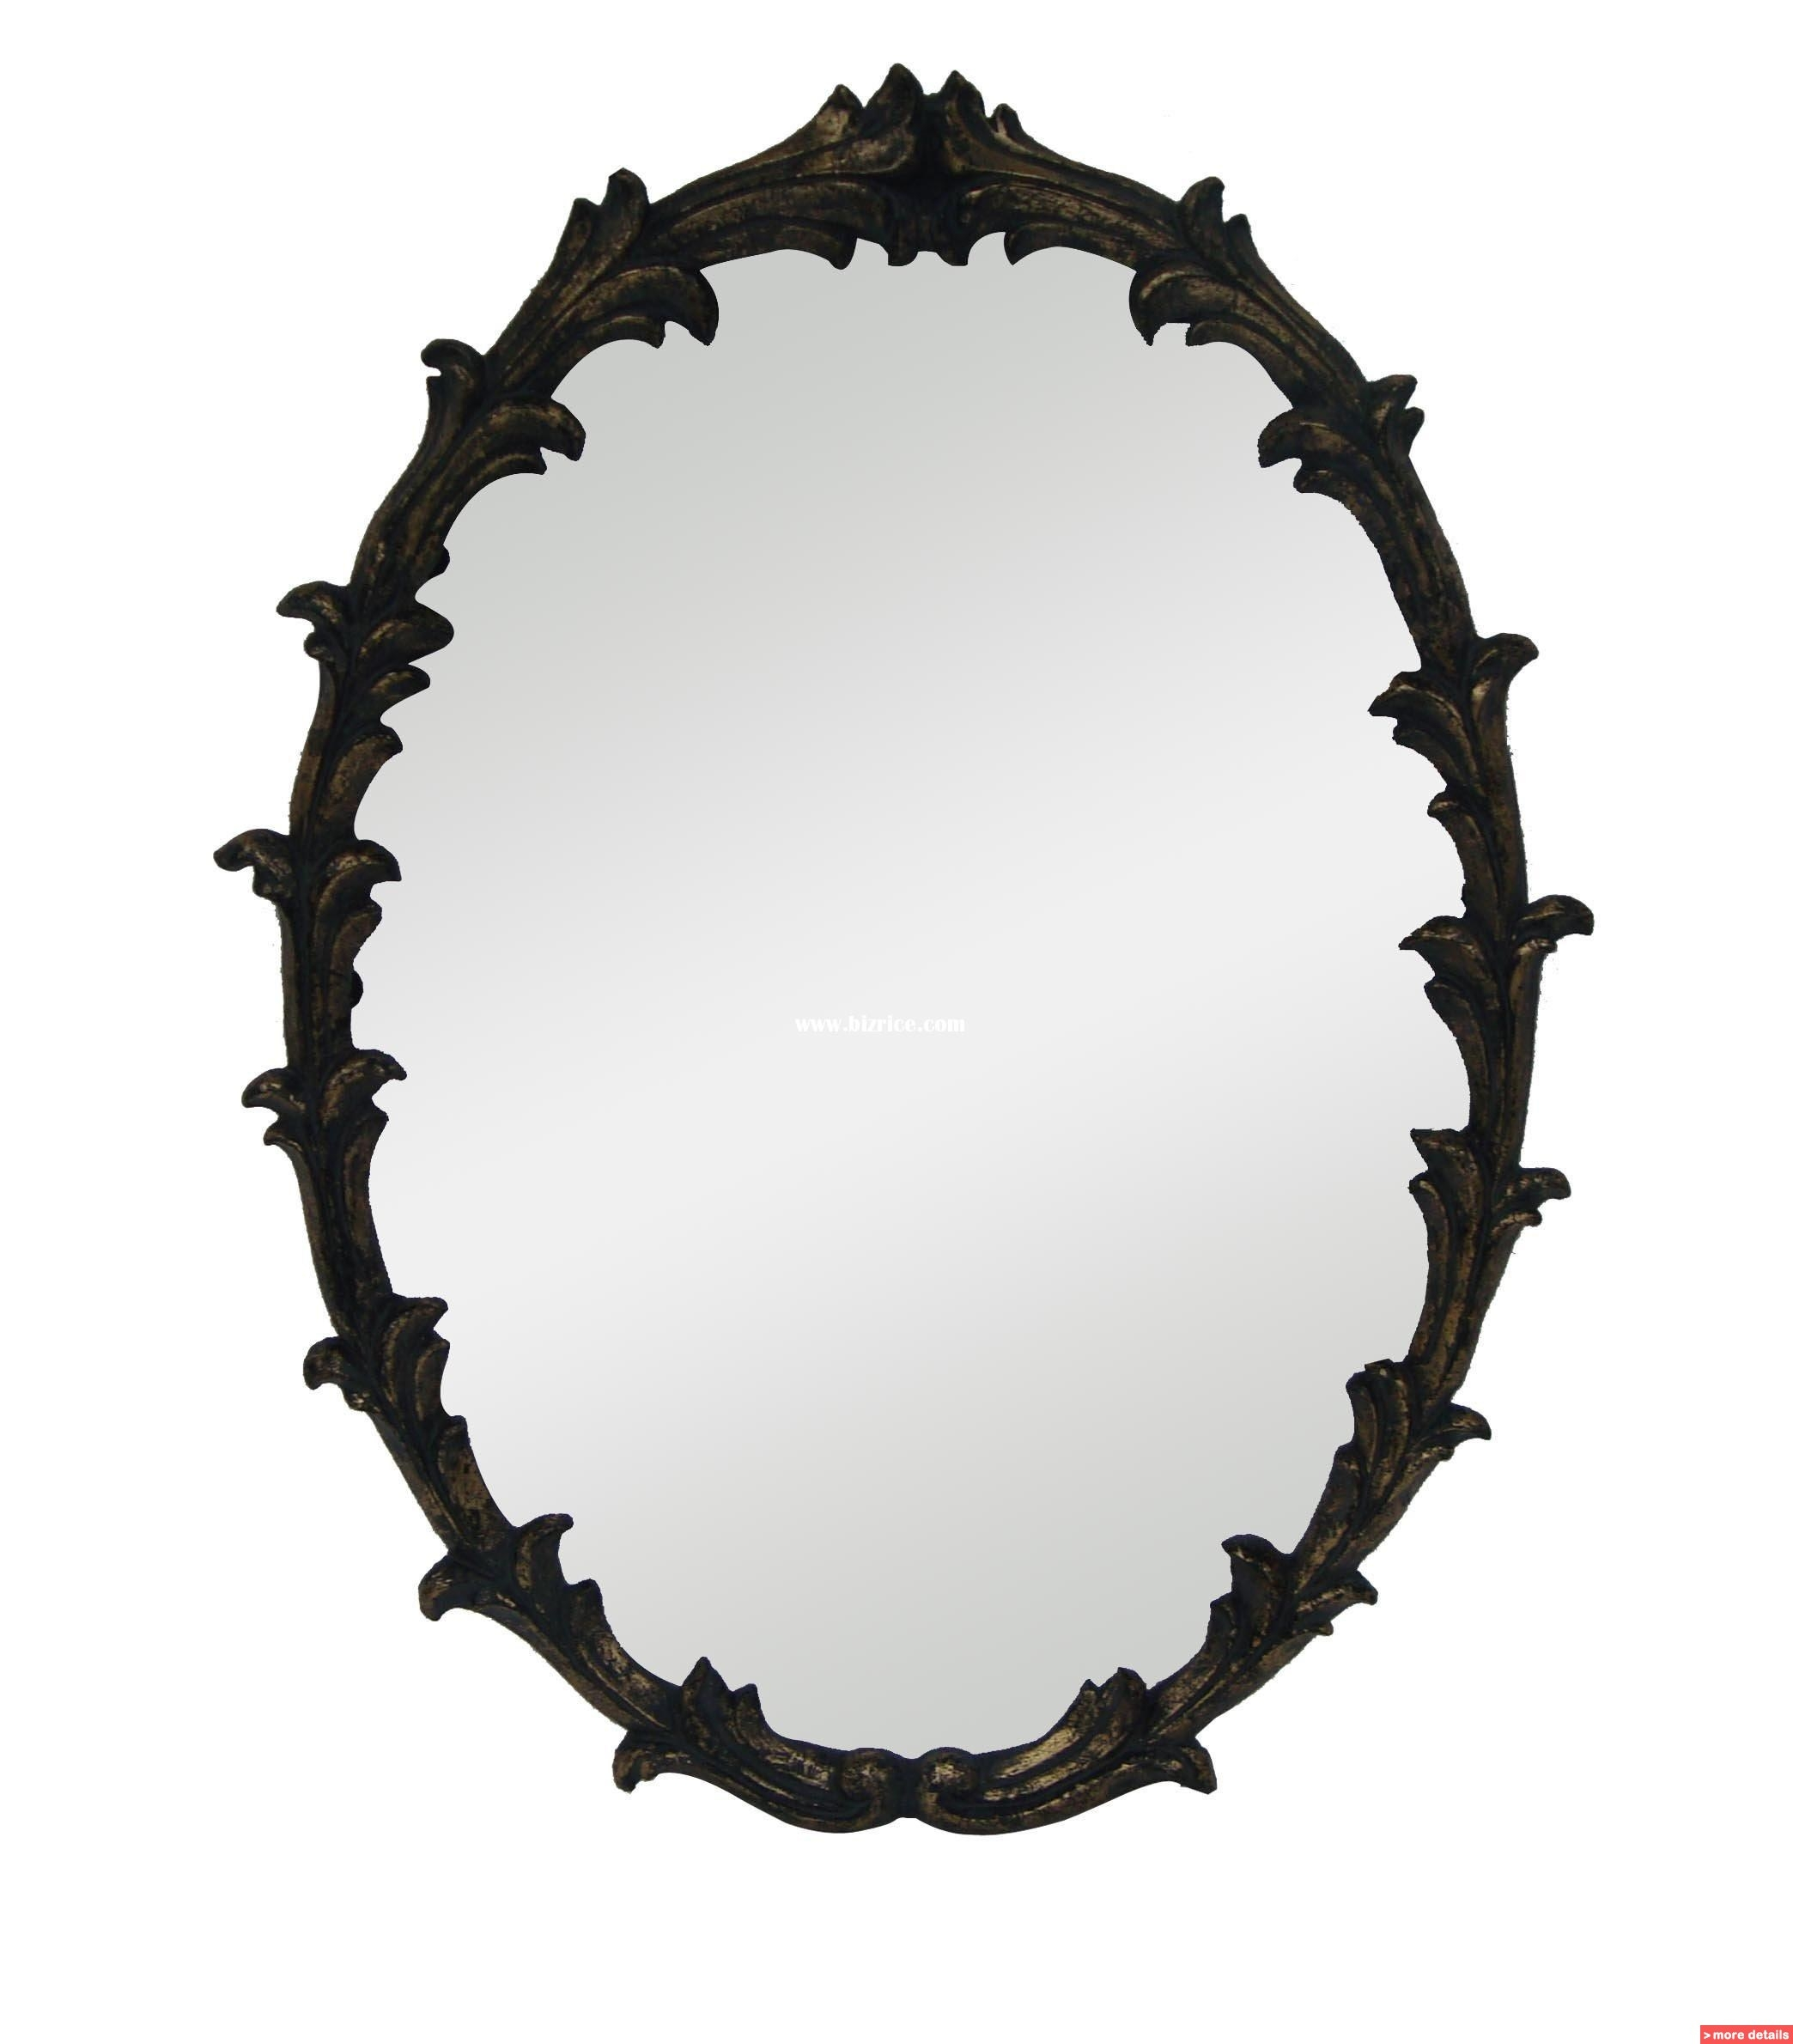 Oval Wall Mirrors Bizrice Regarding Black Oval Wall Mirror (Image 9 of 15)